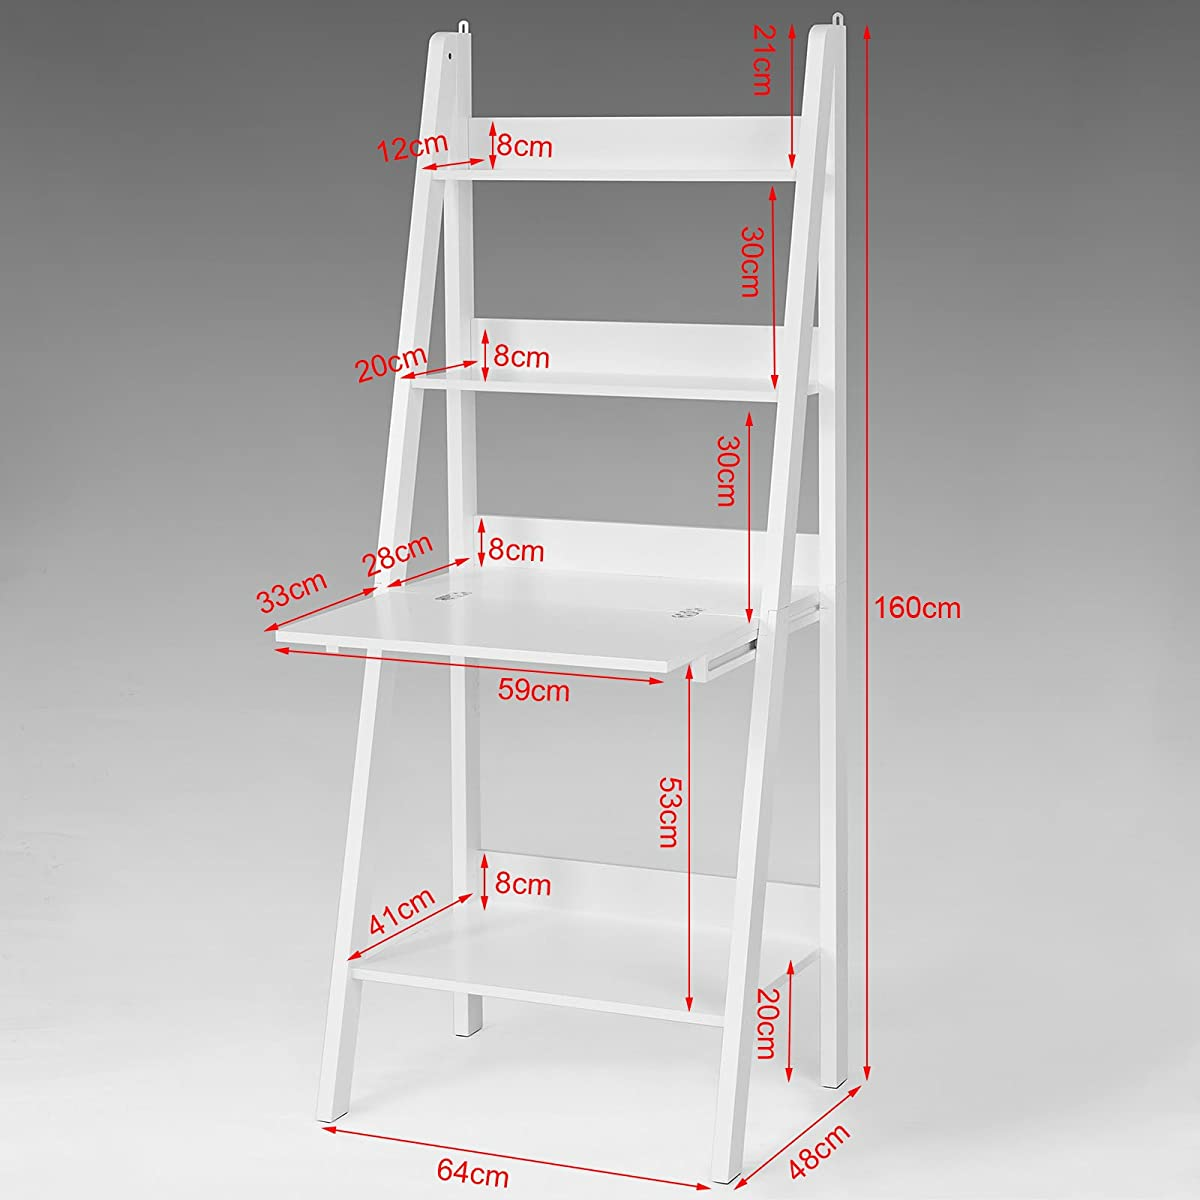 Haotian Storage Display Shelving Ladder Shelf Bookcase with Desk/Memo Board and 3 Shelves, FRG115-W,White